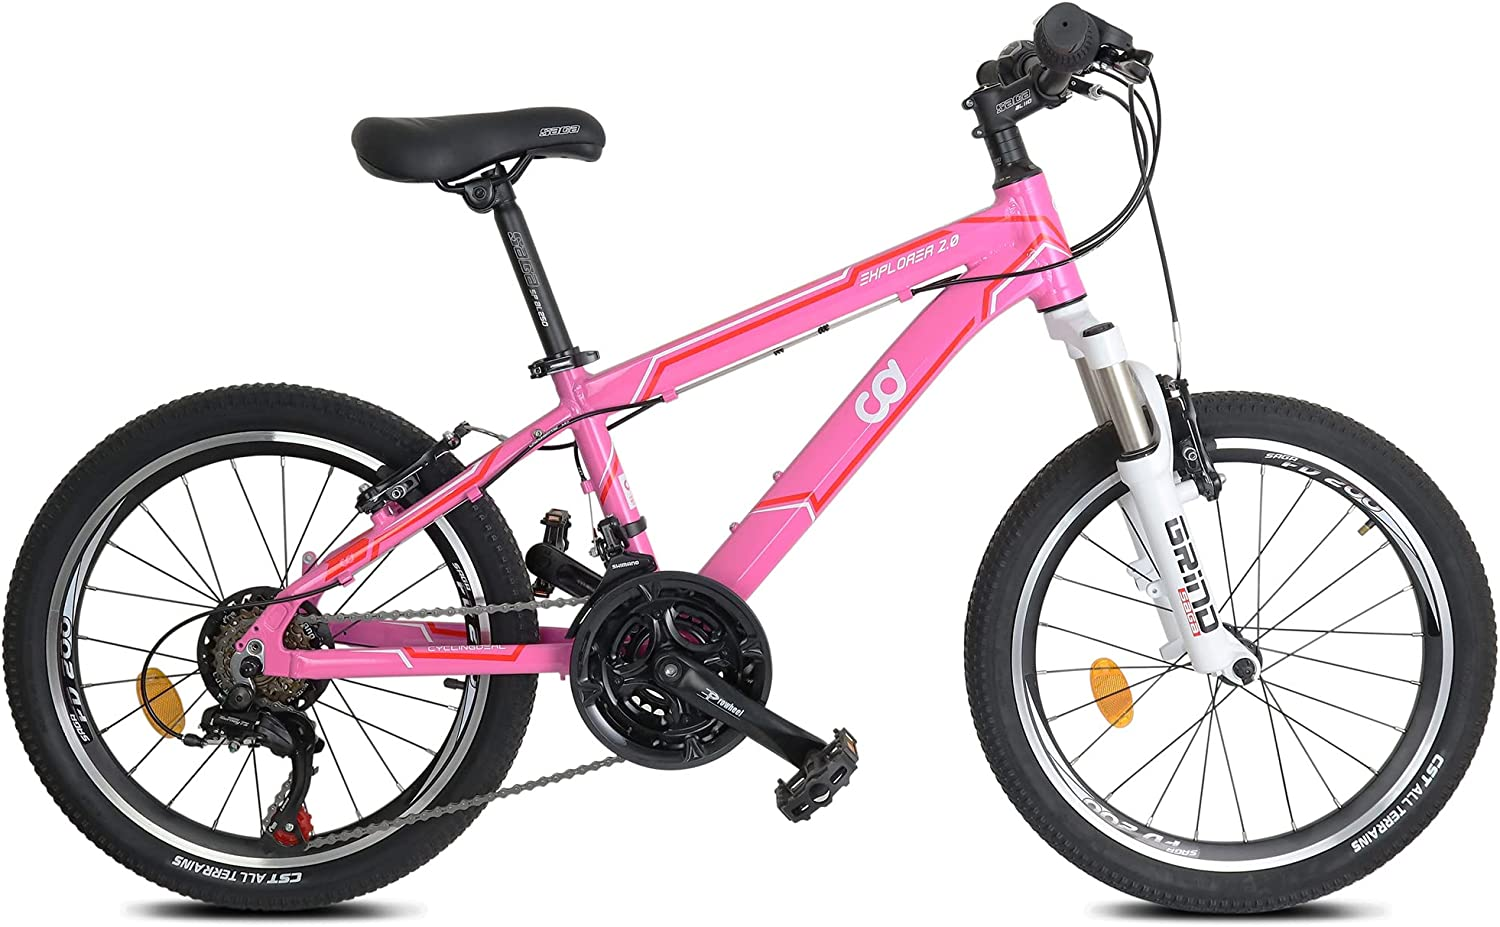 Super sale period limited CyclingDeal Kids Children Mountain Bike Detacha MTB with Some reservation Bicycle